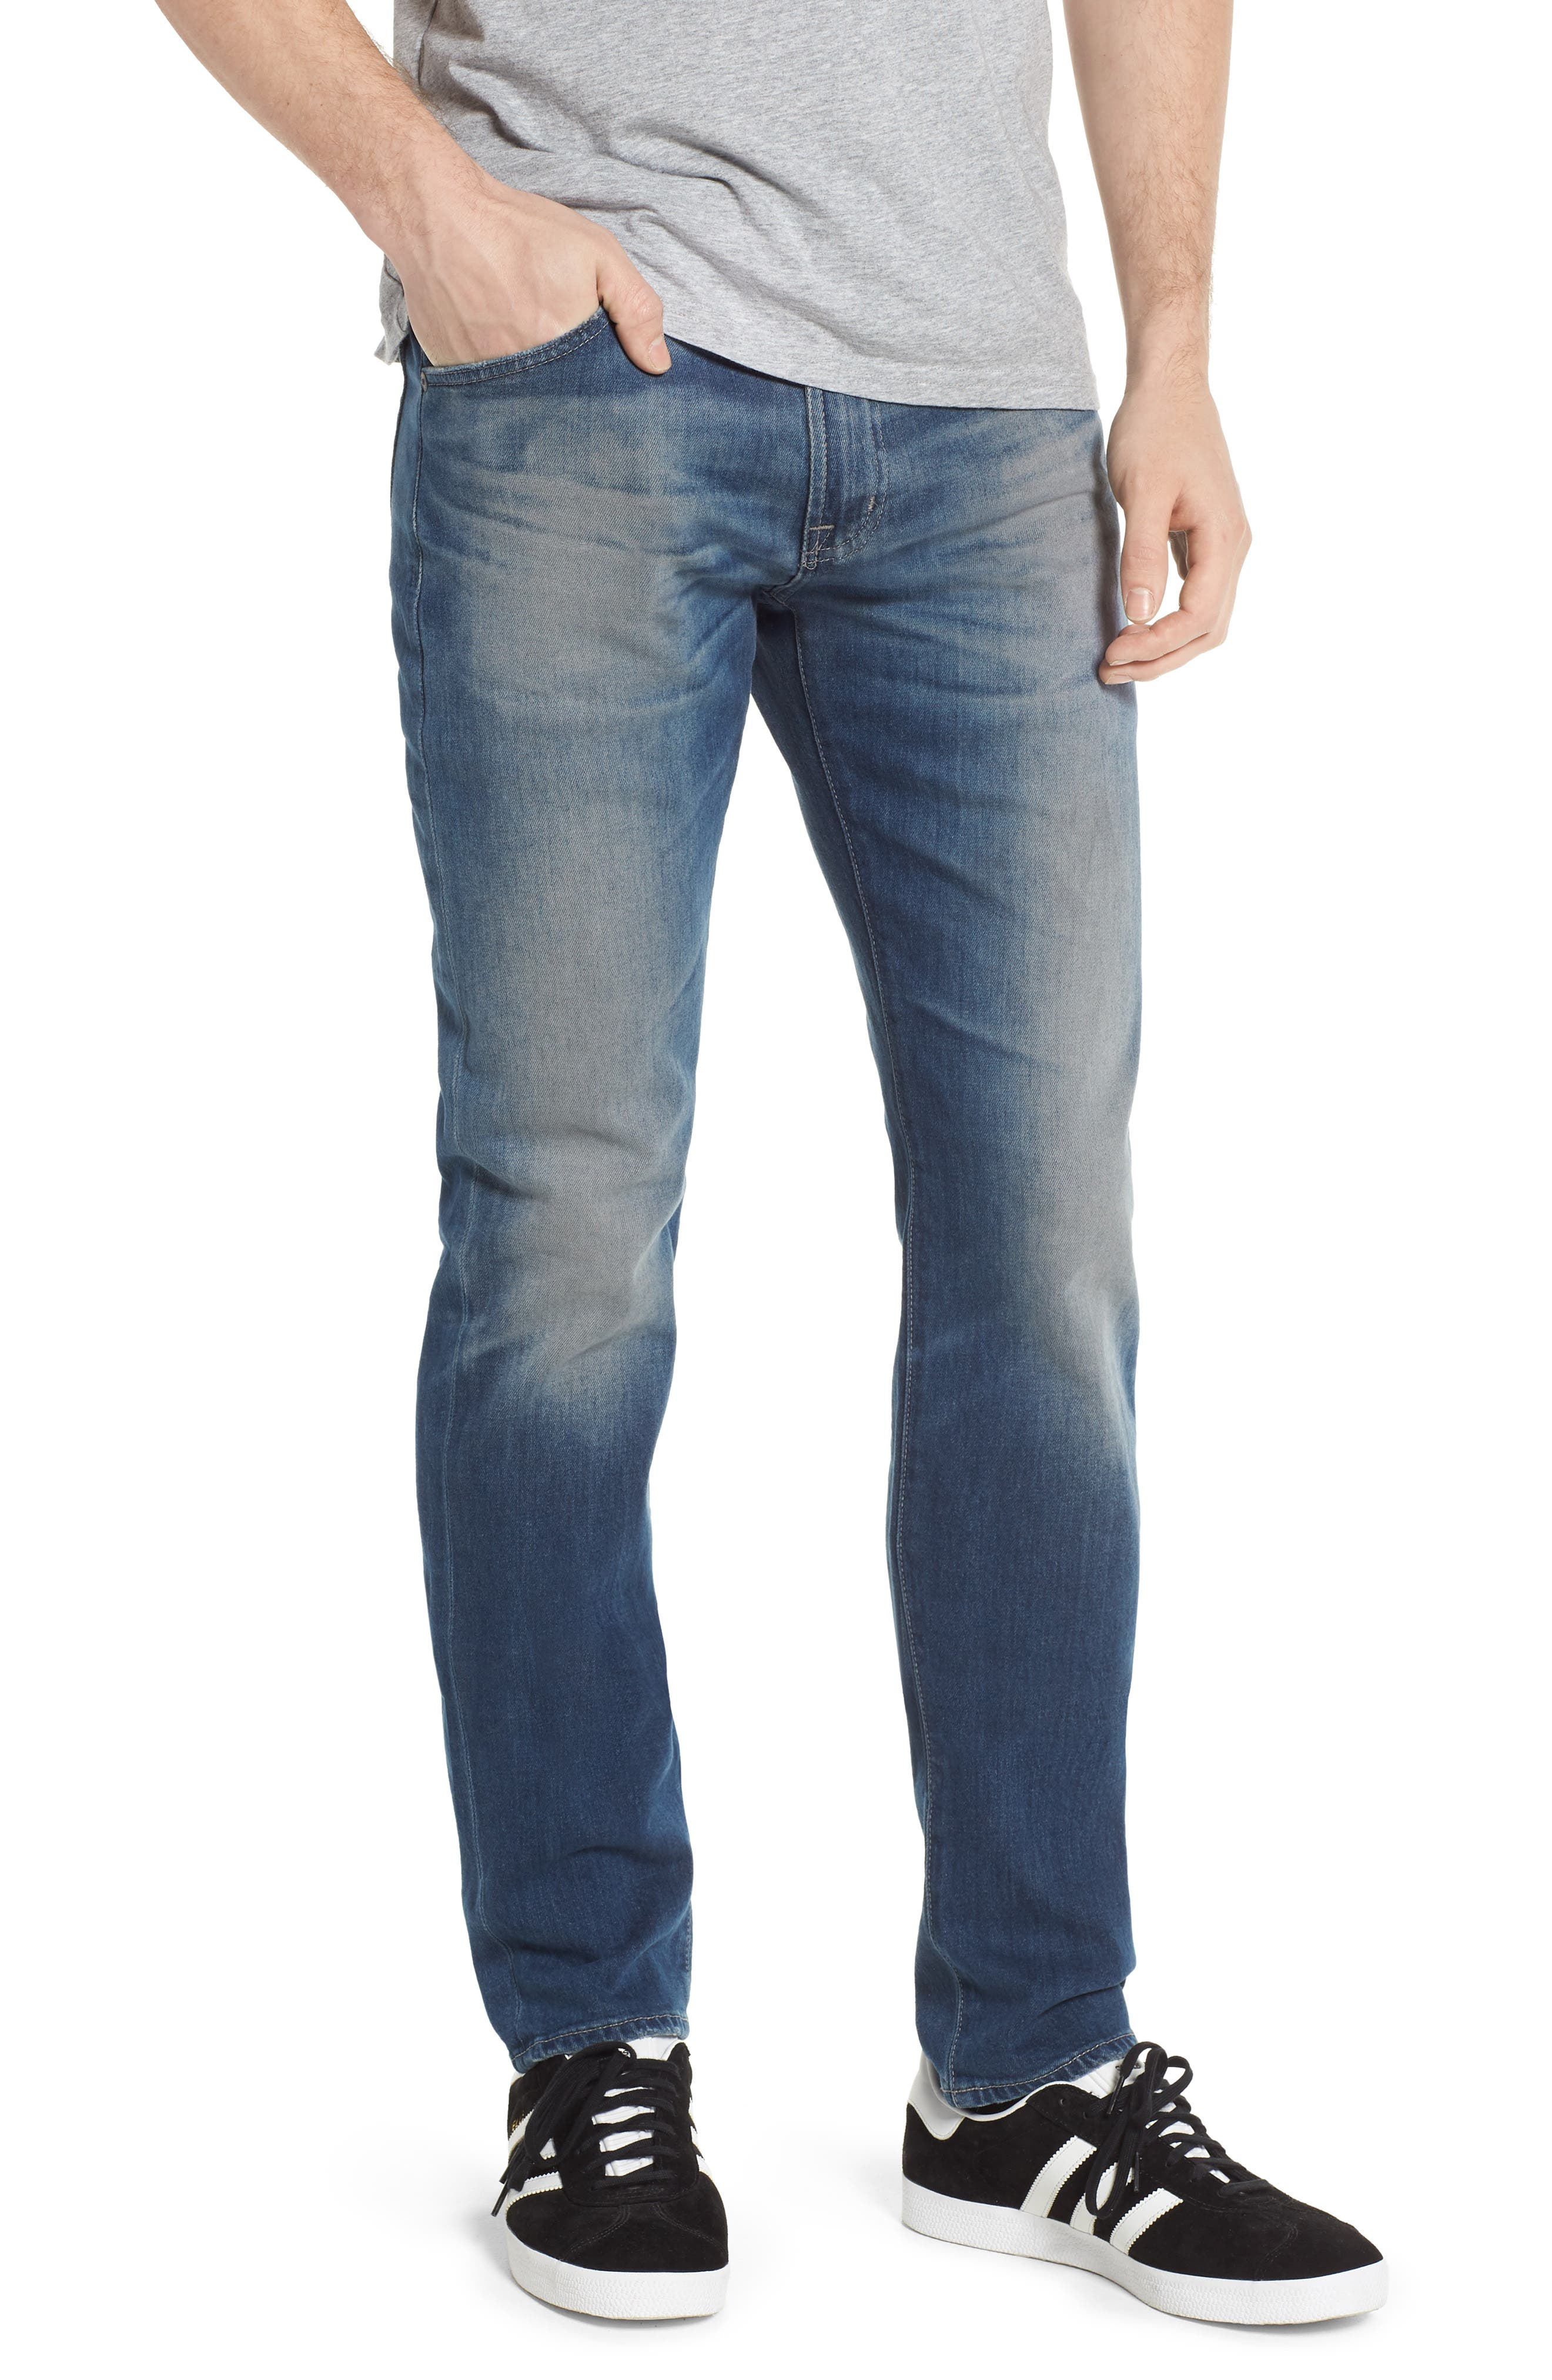 Dylan Skinny Fit Jeans,                         Main,                         color,